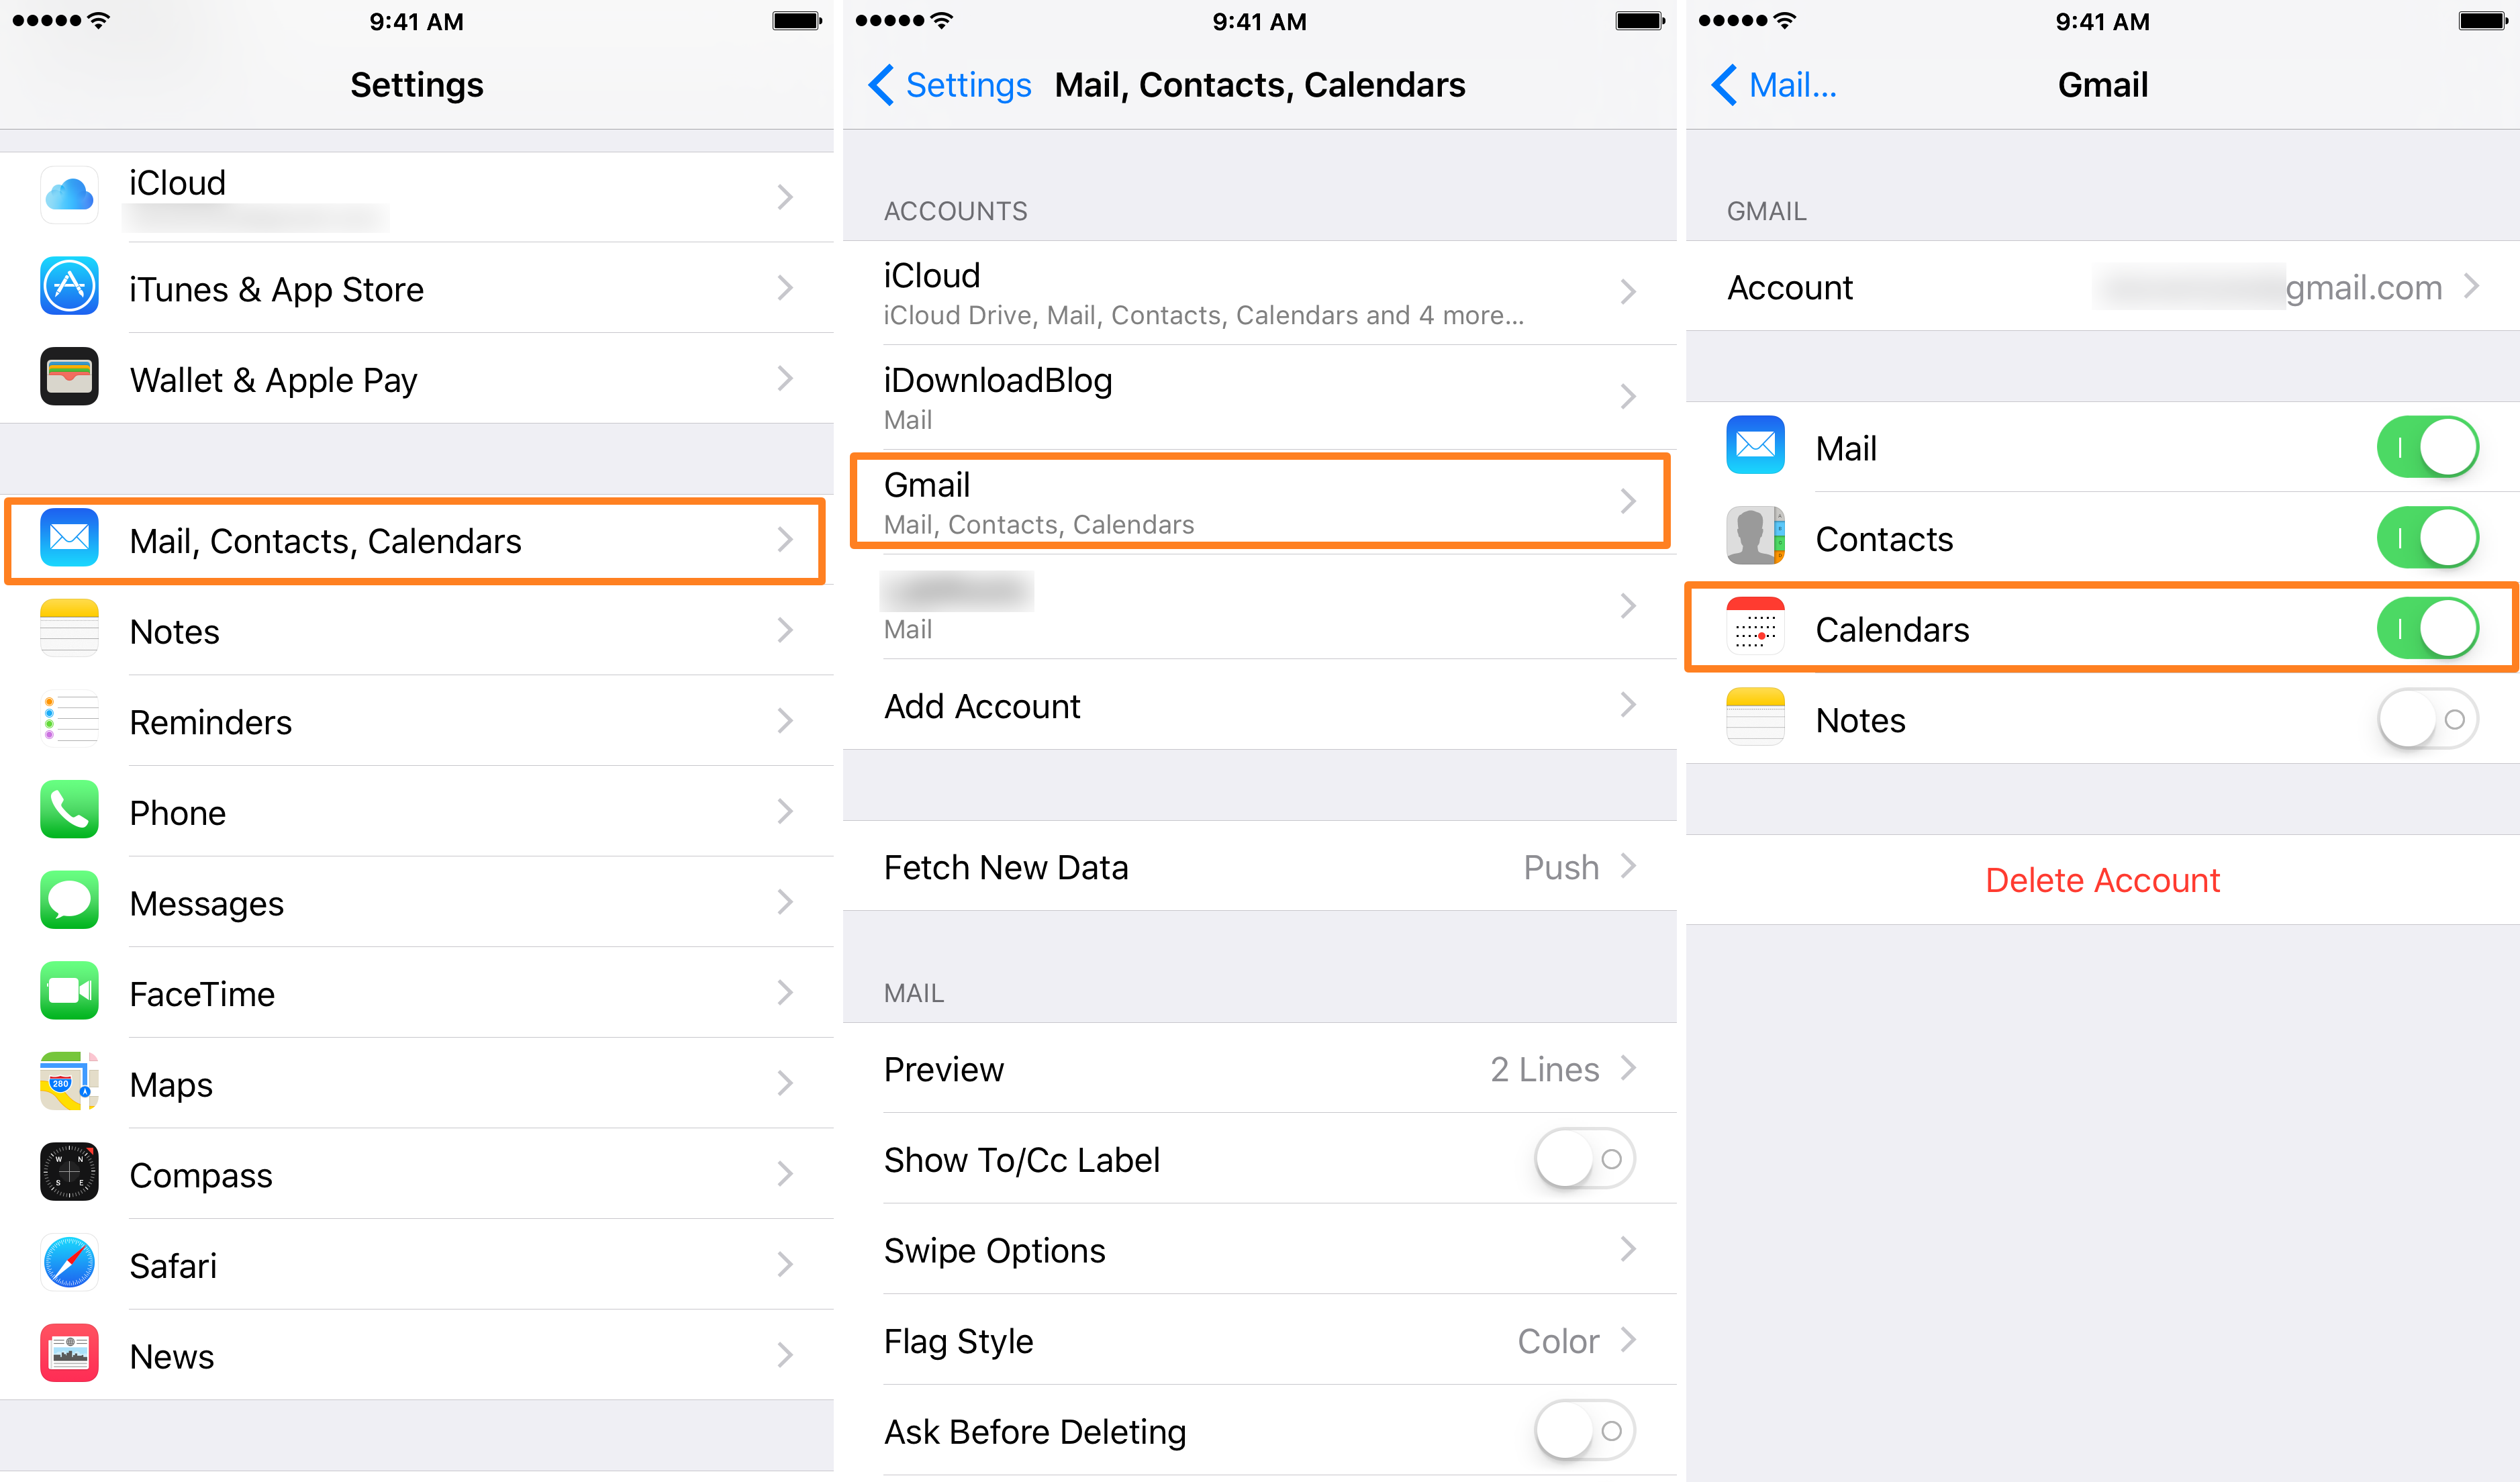 Enable Google to Access iOS Calendars in Account Settings